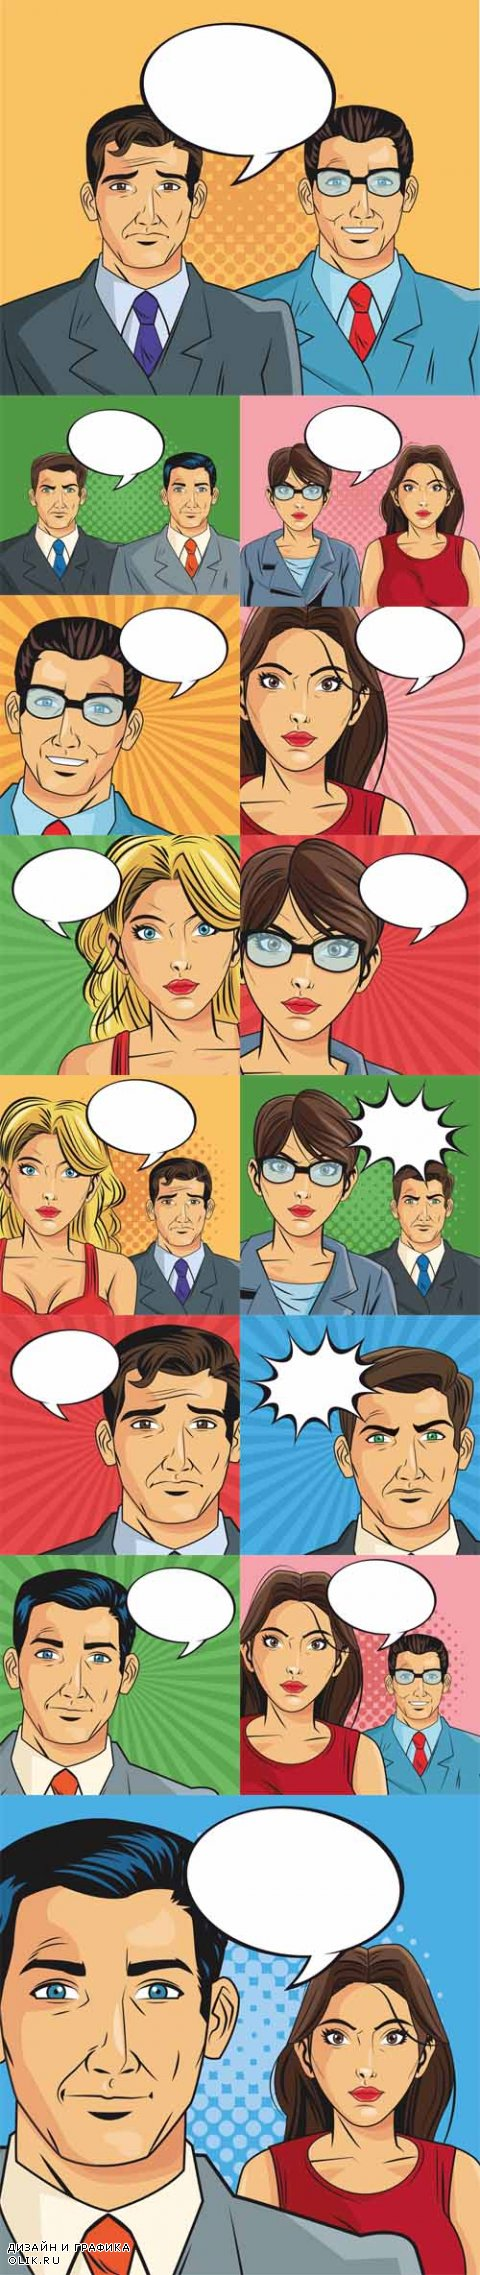 Vector Woman and Businessman with Speach Bubble Pop Art Comic Retro